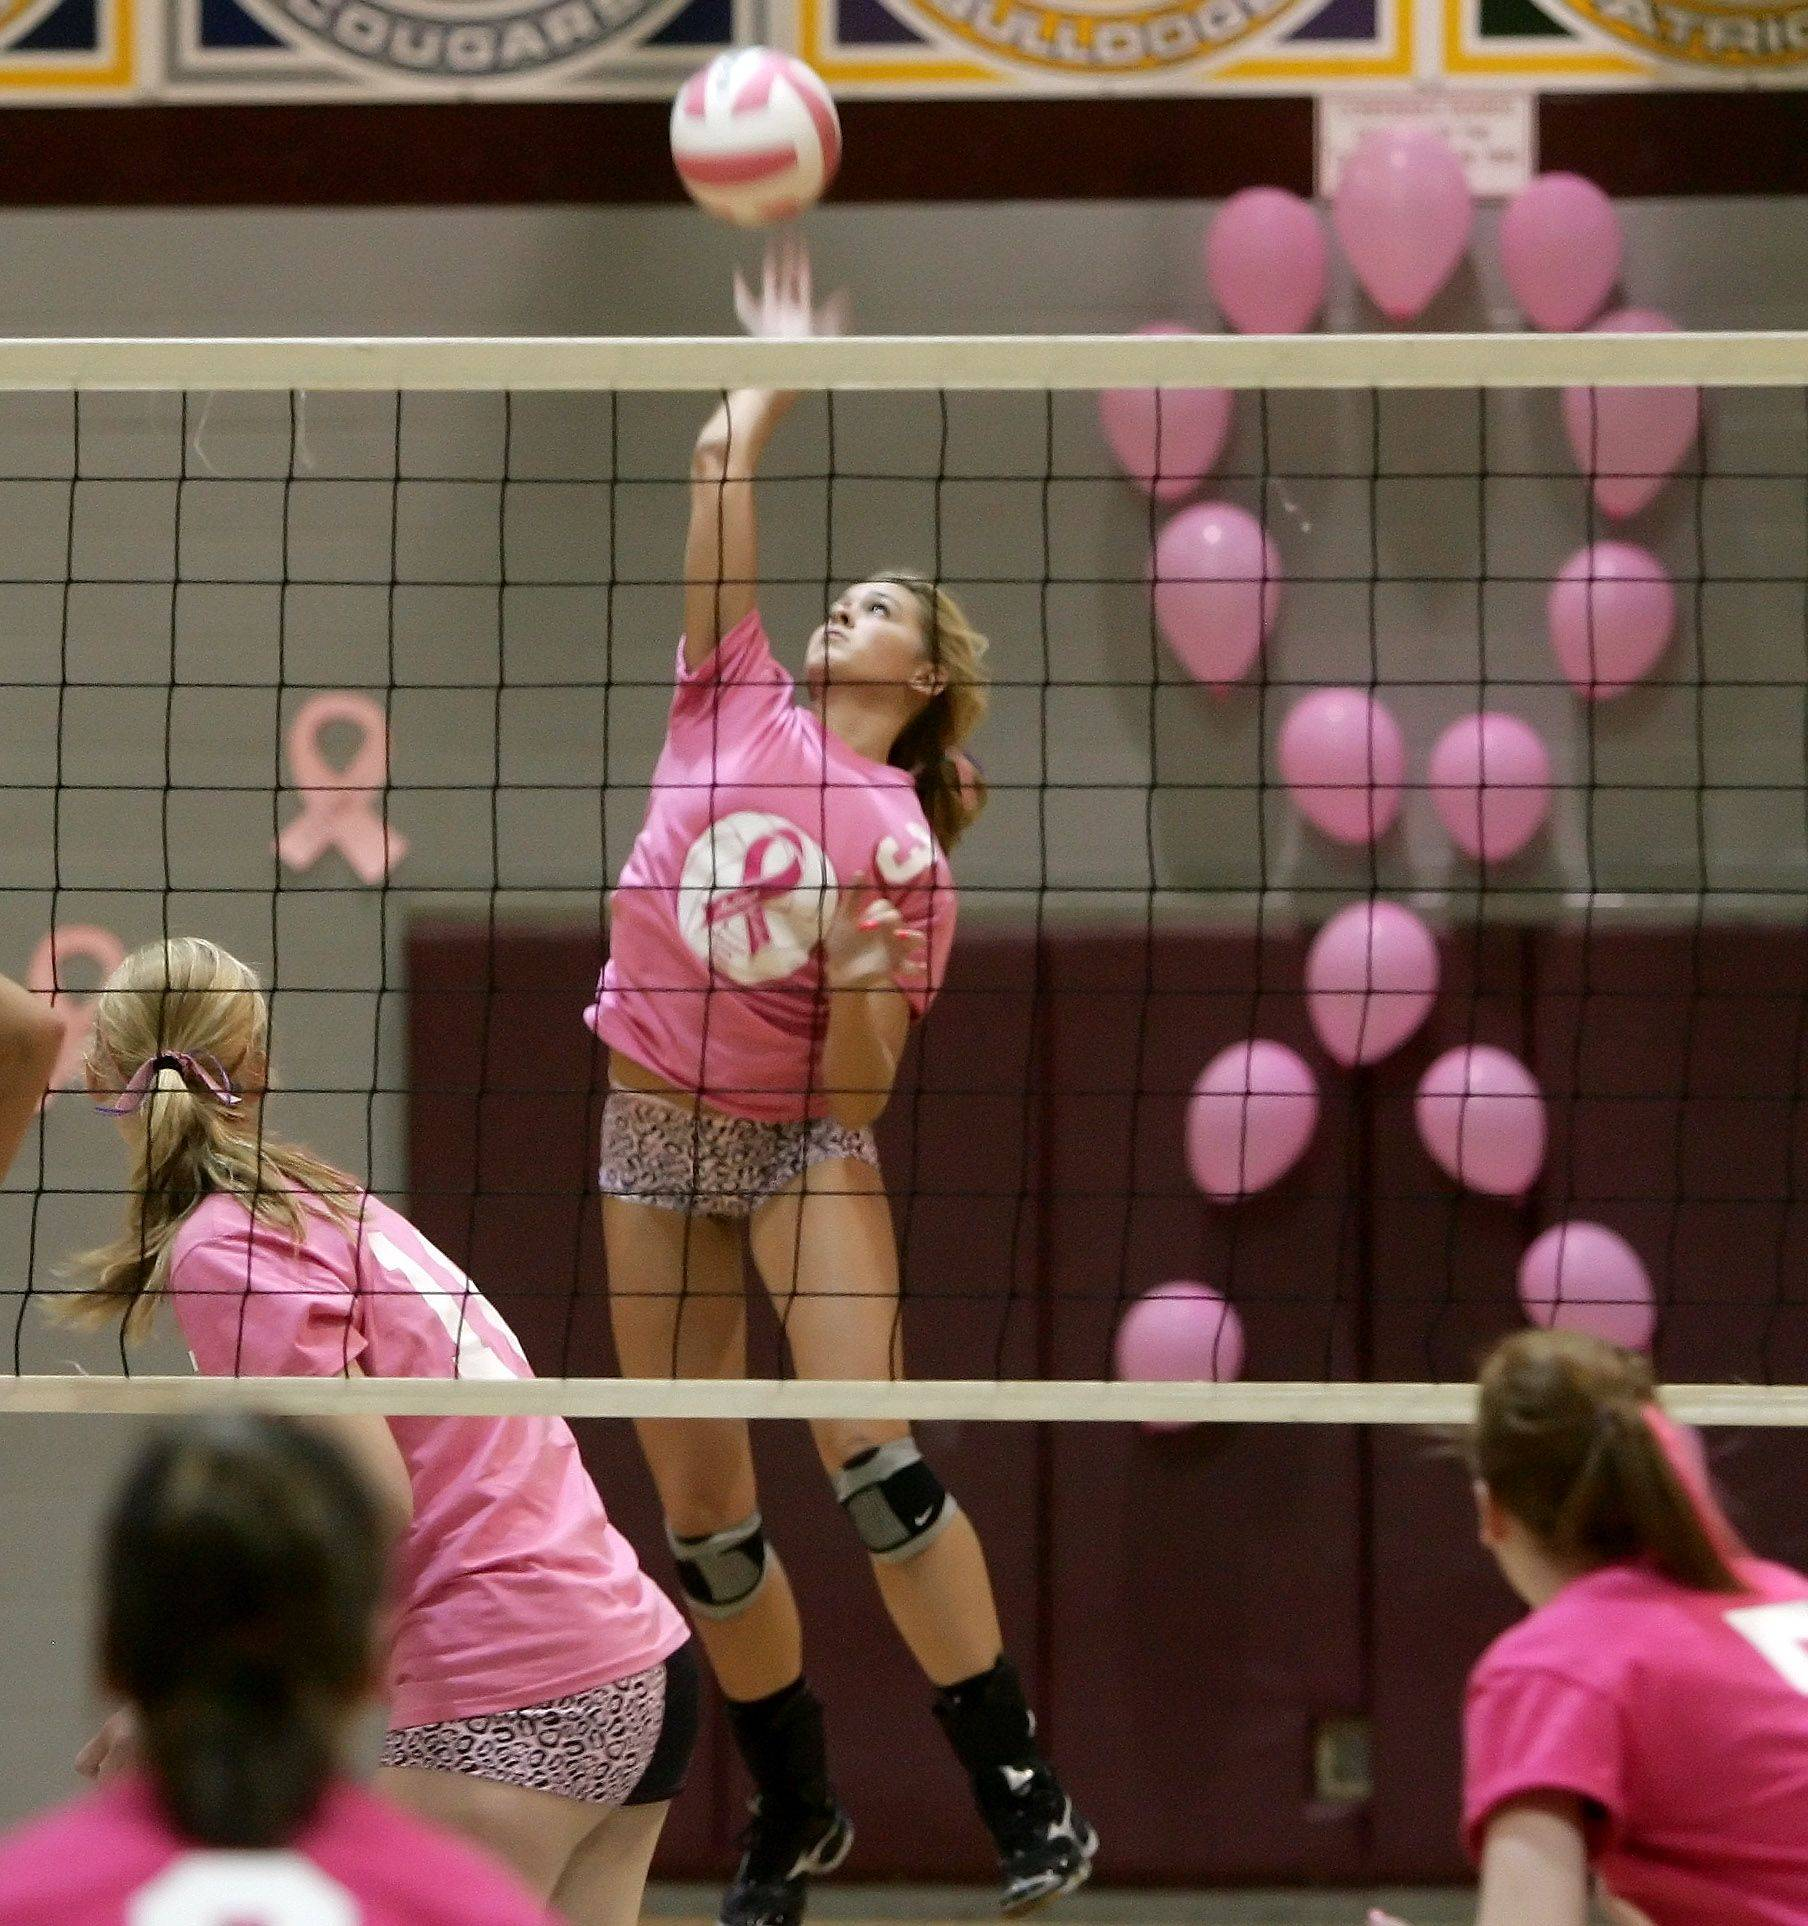 Antioch's Brianna Grant hits the ball during Thursday's game against Lakes. The game was the 4th Annual Volley for the Cure game for Breast Cancer Awareness.